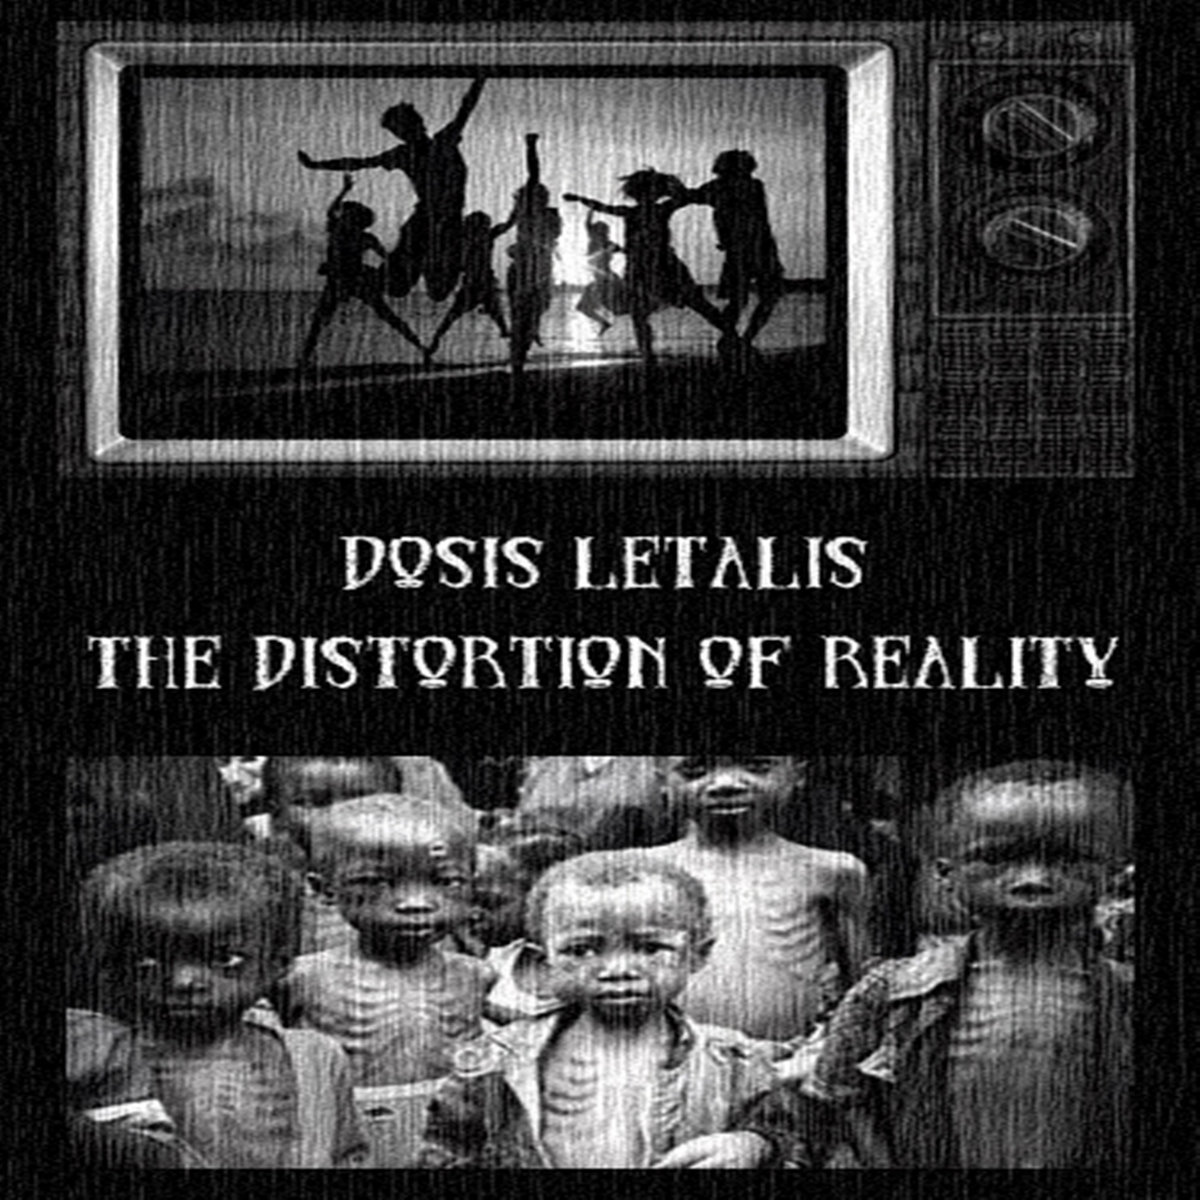 Dosis Letalis - The Illness Of Our Time